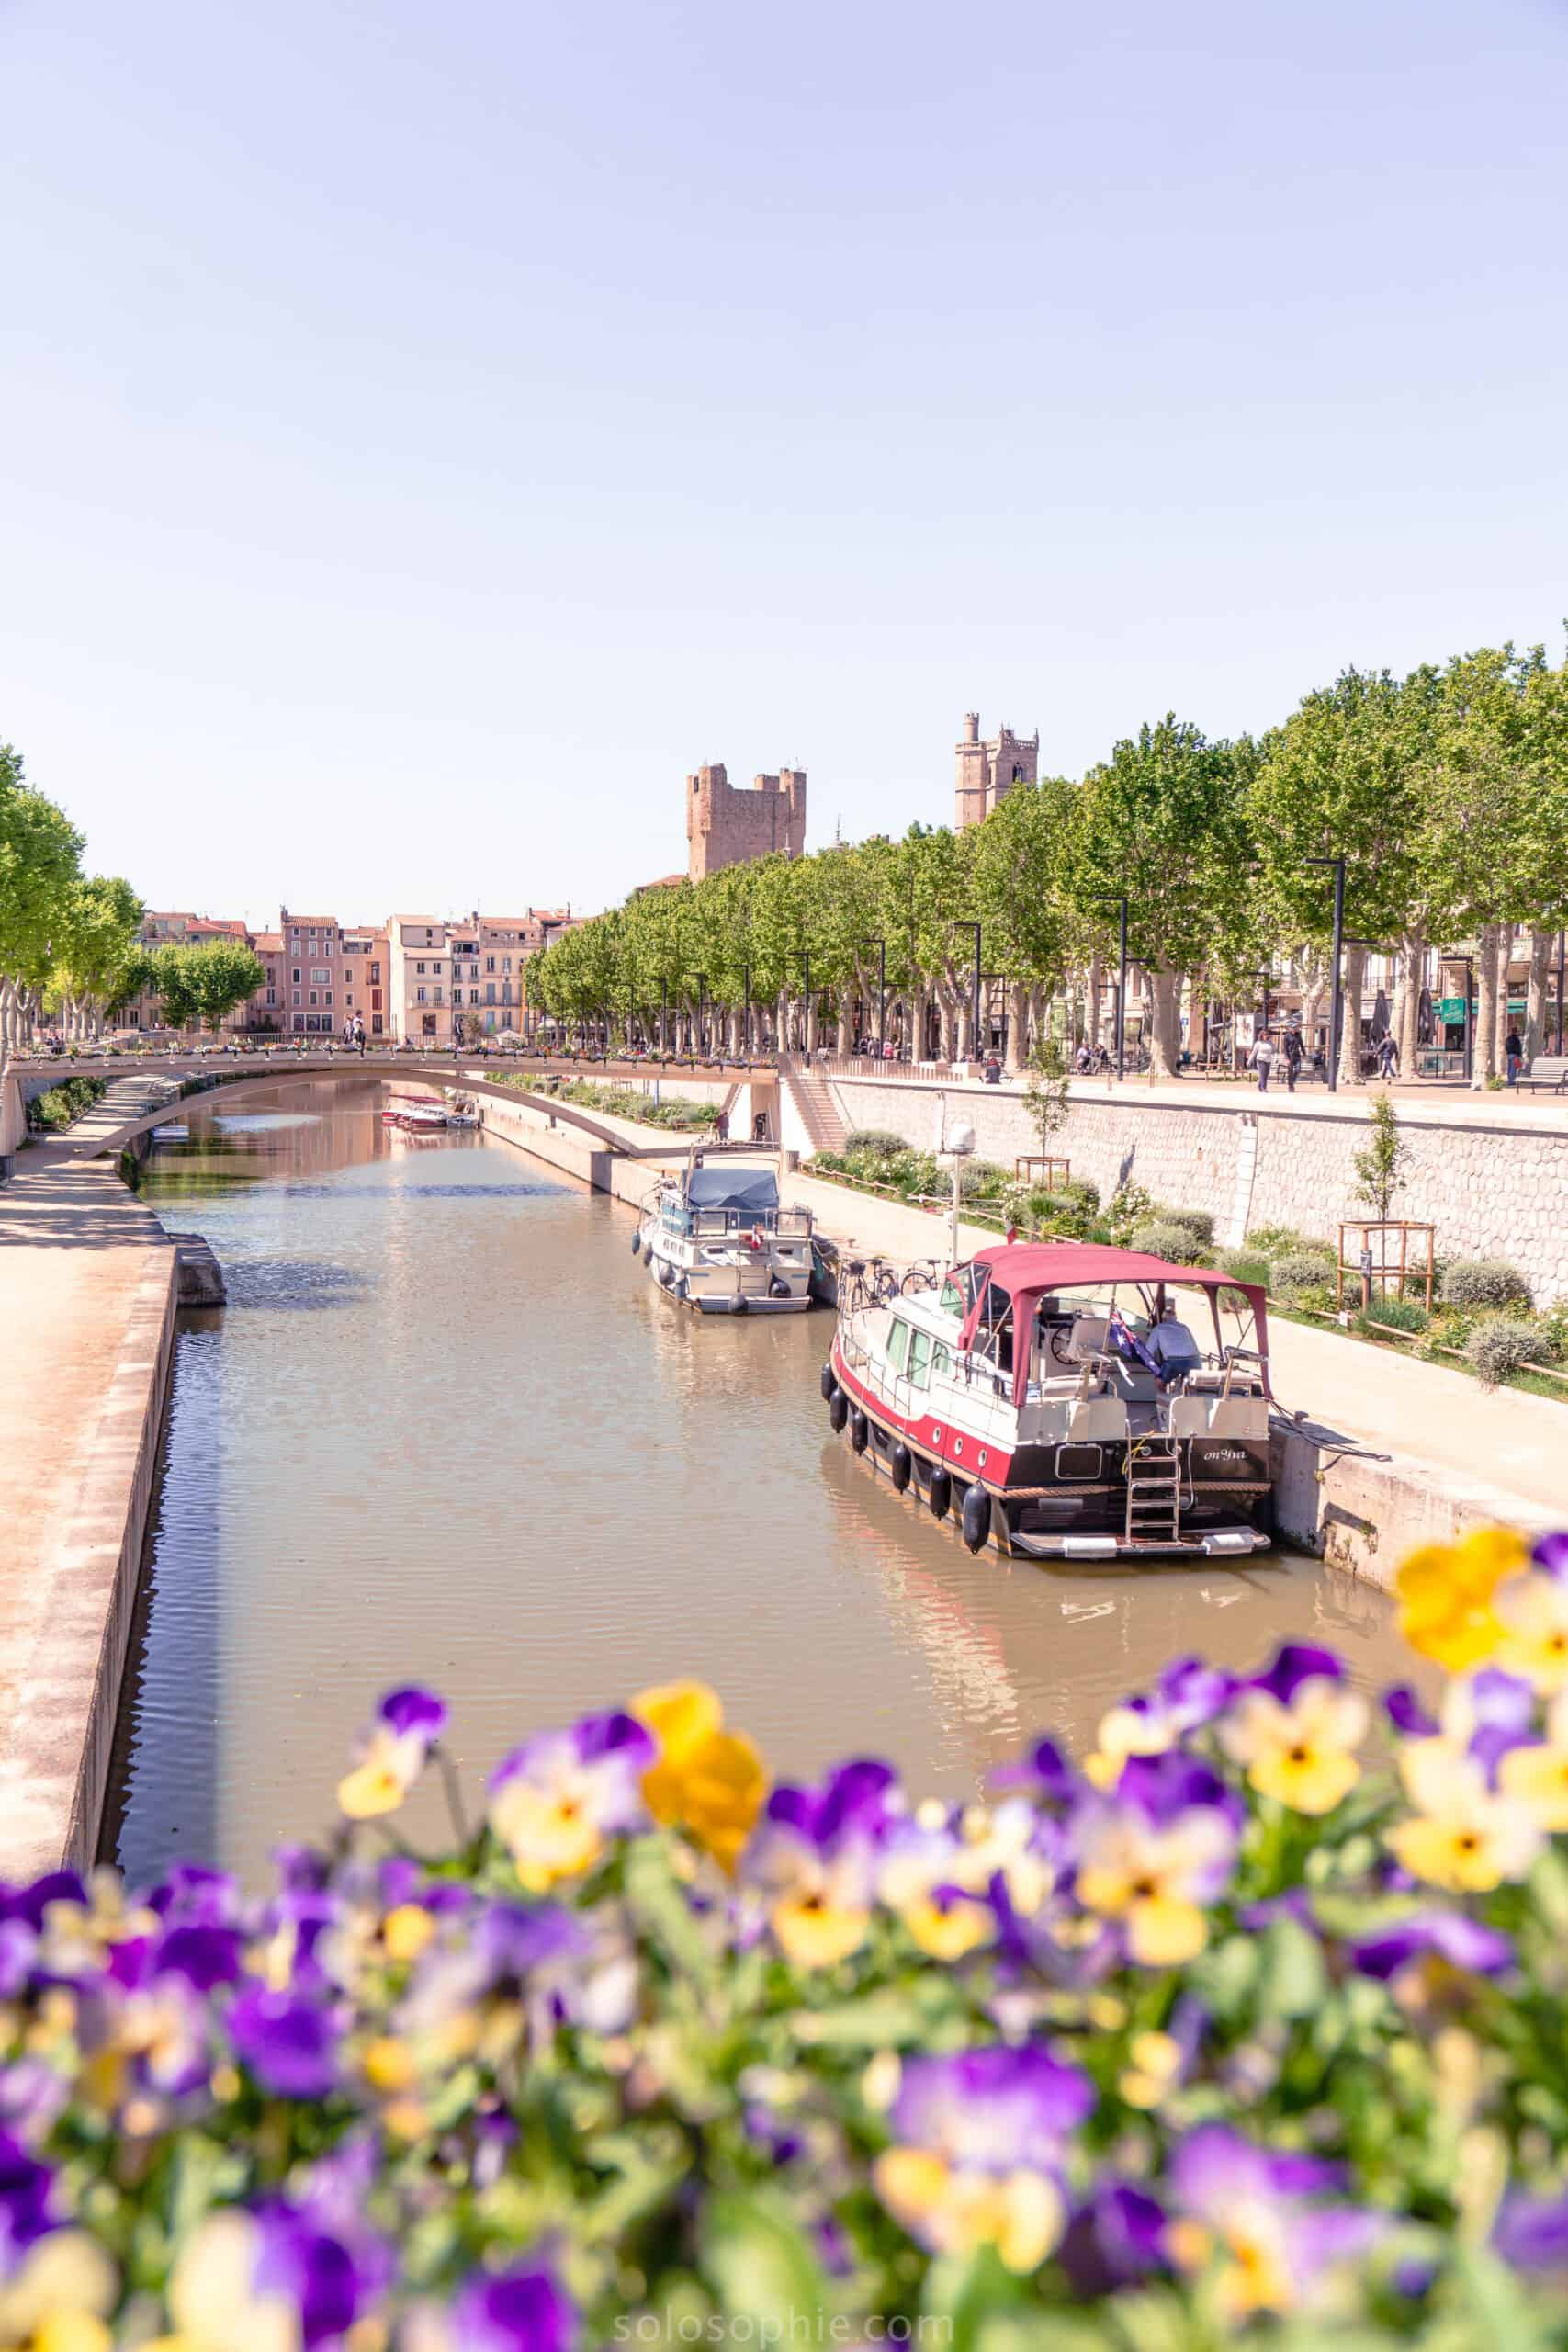 A quick guide to the best things to do in Narbonne, Languedoc-Roussillon (Occitanie), South West France. Off the beaten tourist track French travel to a former Roman port city!